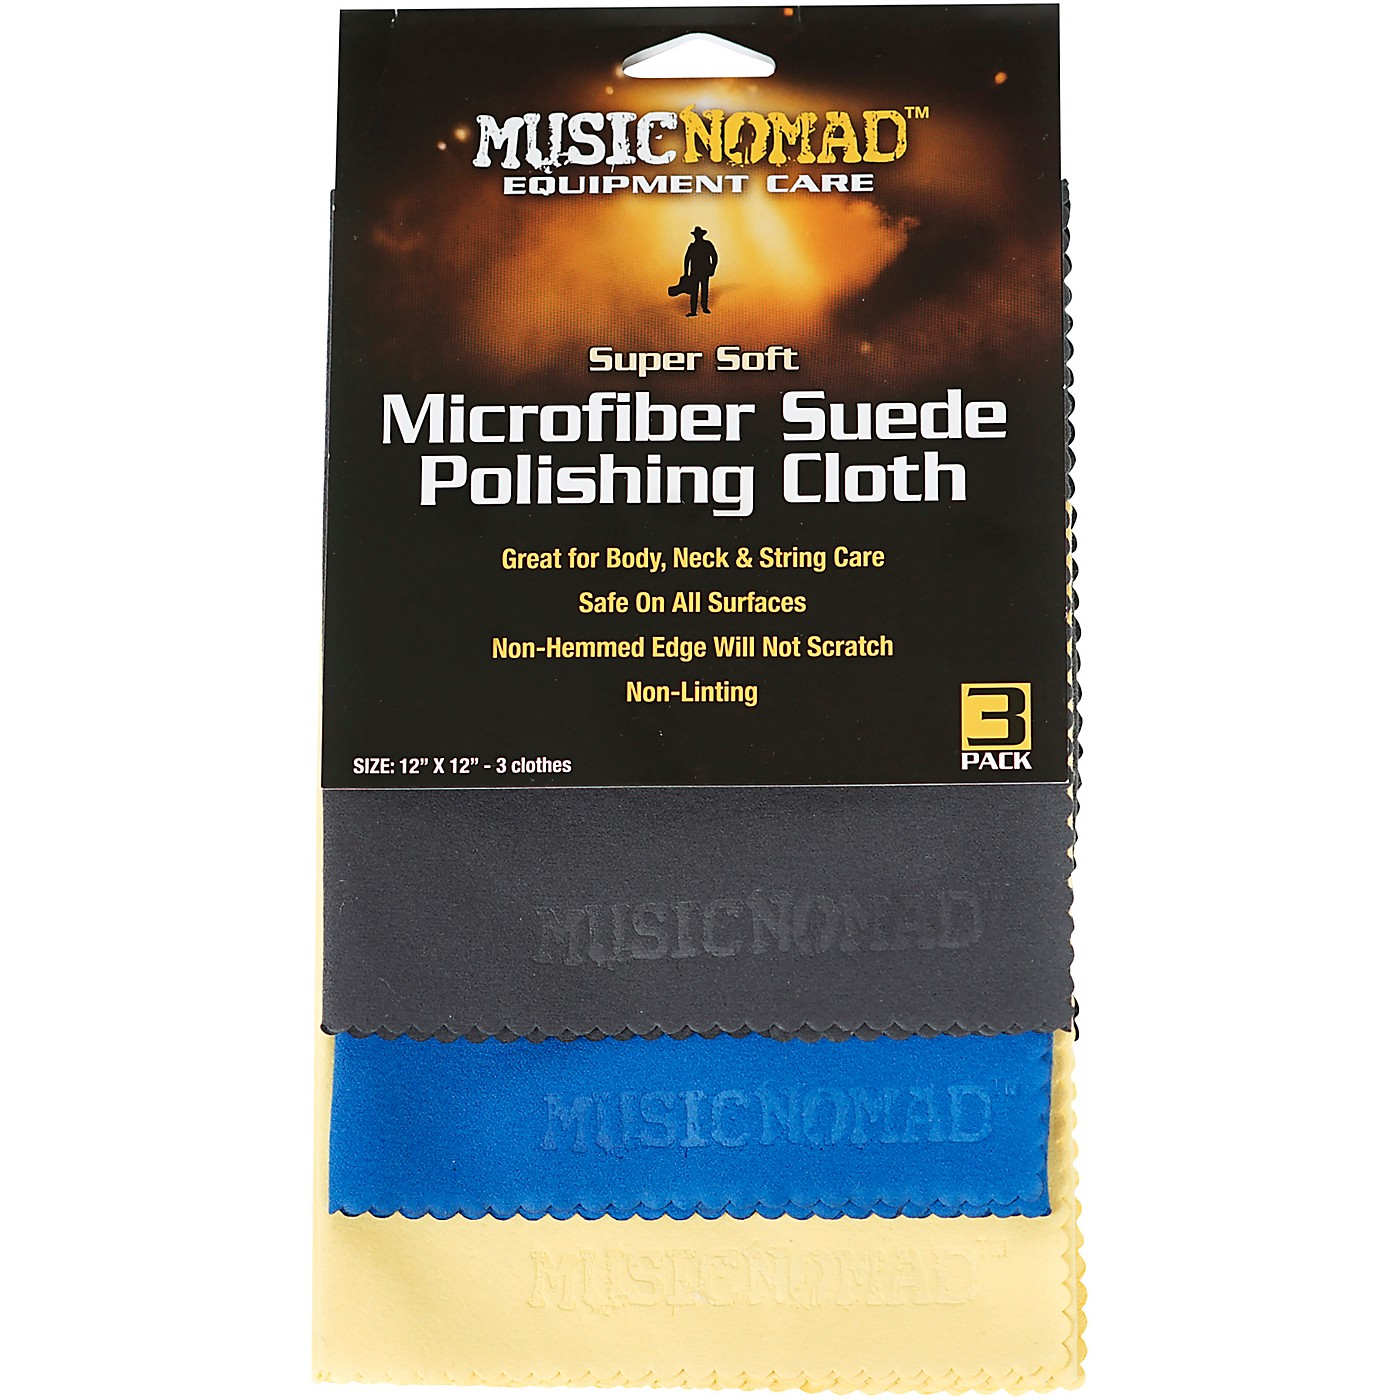 MusicNomad Super Soft Microfiber Suede Polishing Cloth - 3 Pack thumbnail